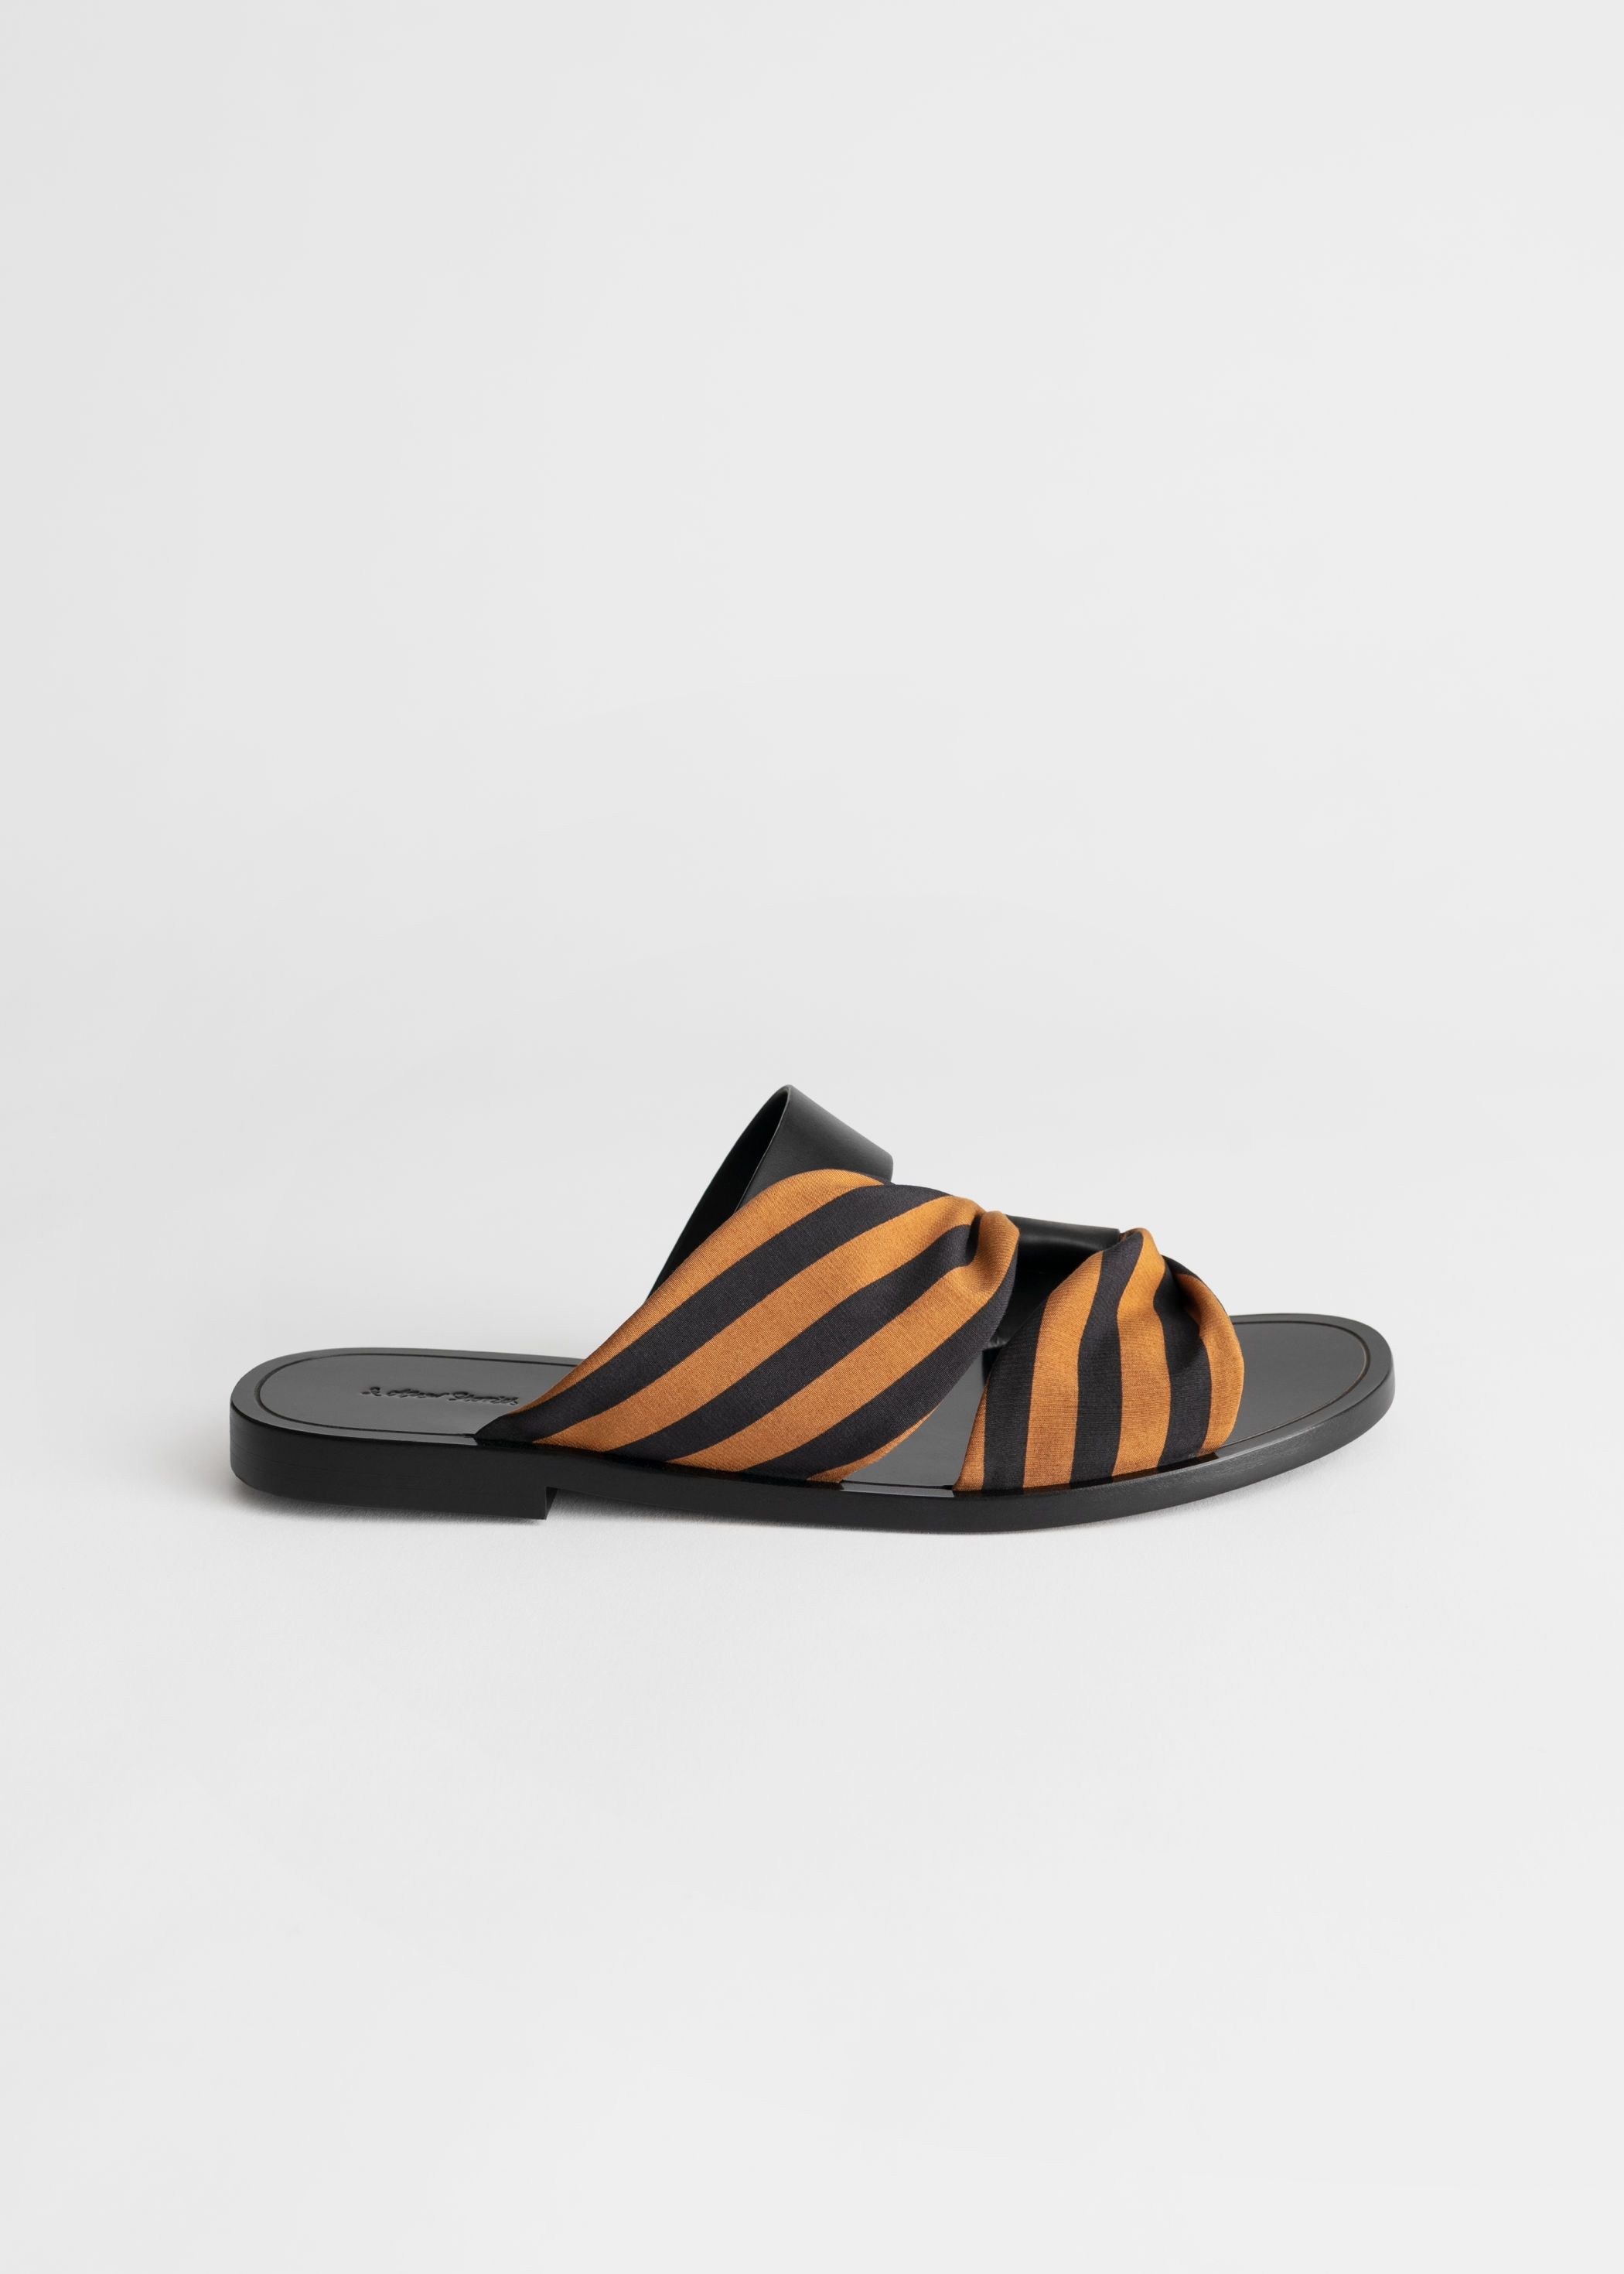 Draped Stripe Cross Leather Sandals | Leather sandals